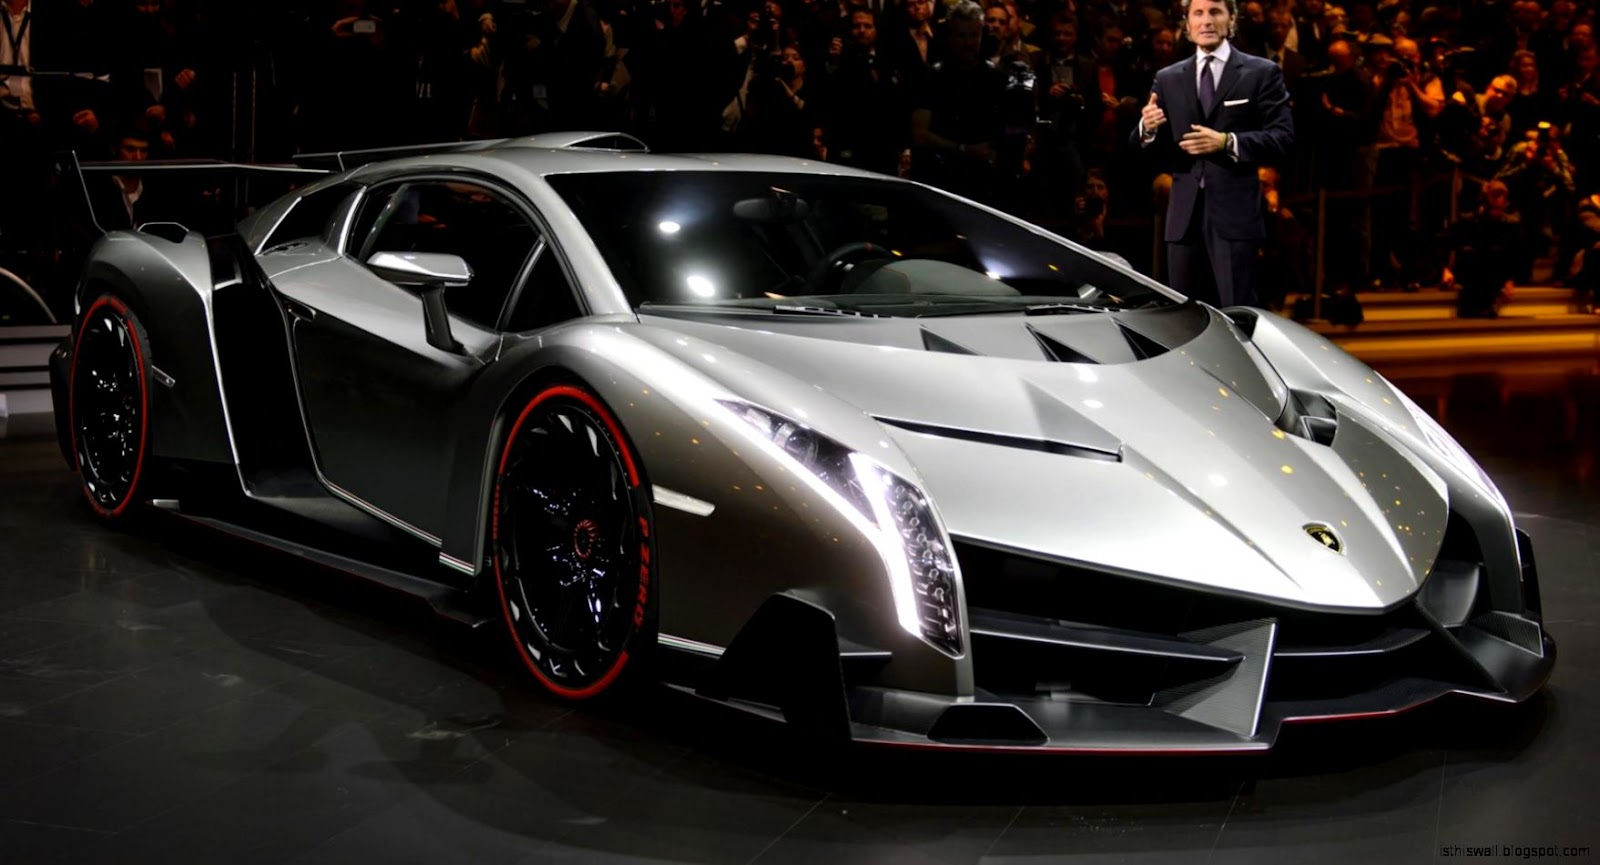 The 4 million Lamborghini Venenos maiden voyage